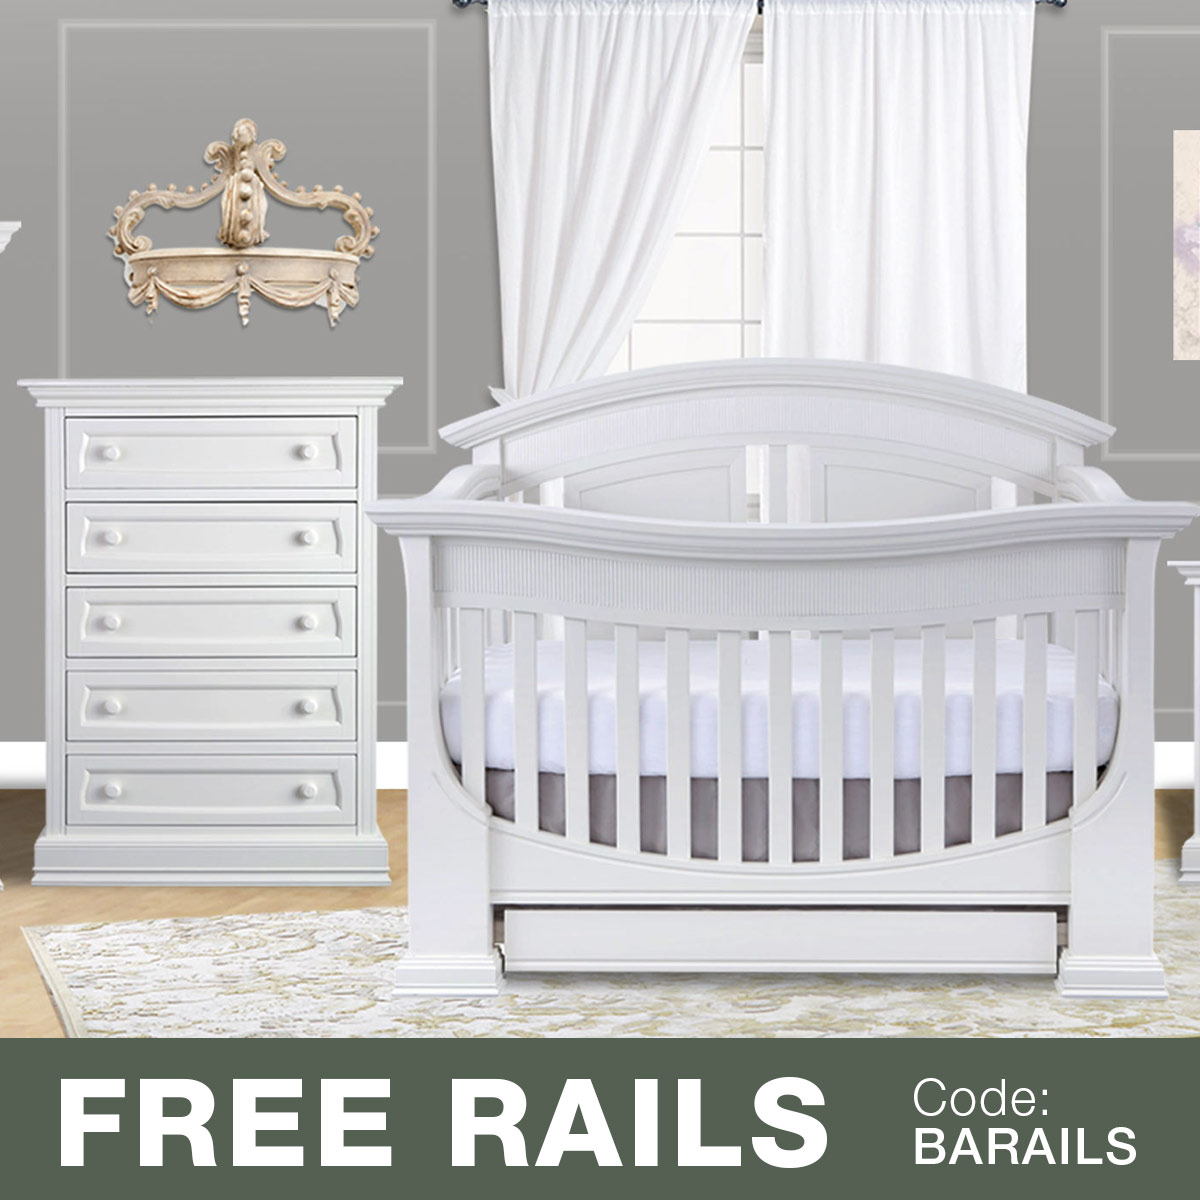 Baby appleseed 2 piece nursery set chelmsford 3 in 1 convertible crib and davenport 5 drawer tall dresser in pure white free shipping